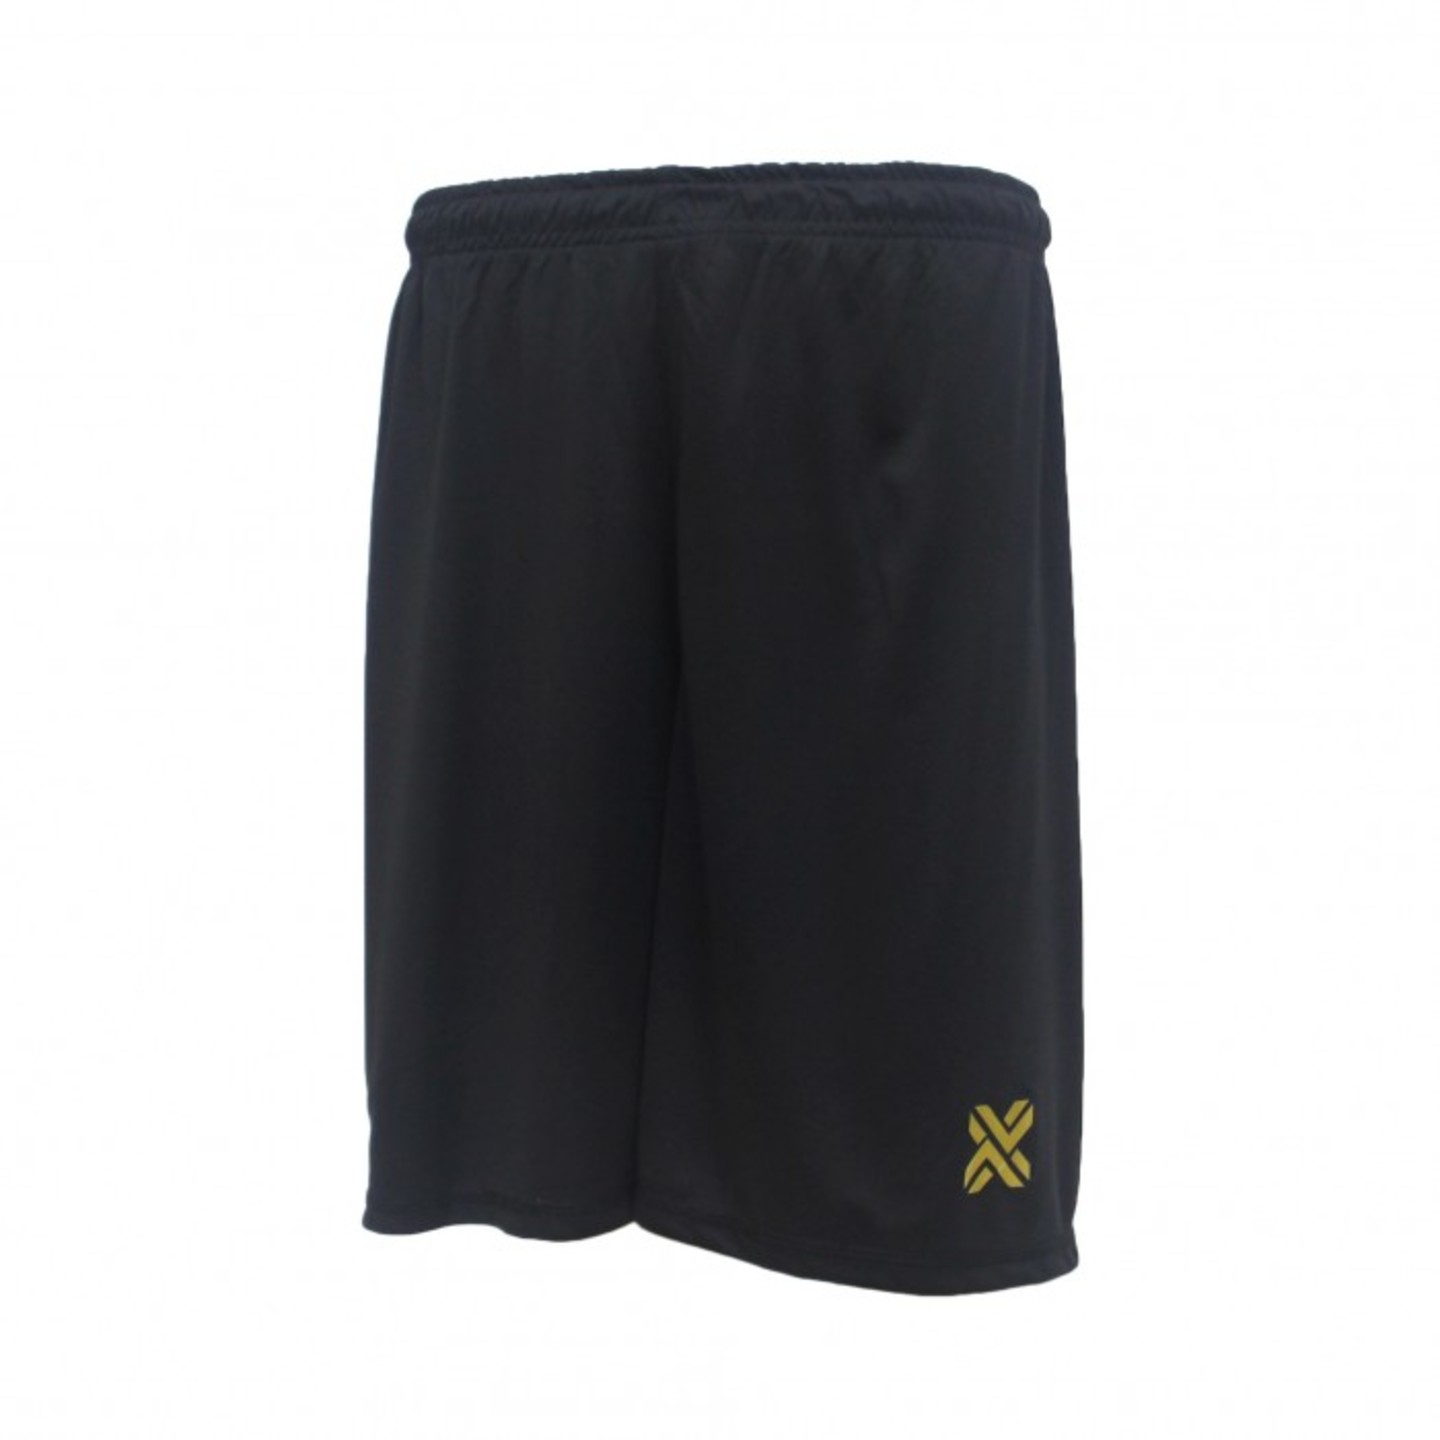 Housebrand Shorts (With Pockets)